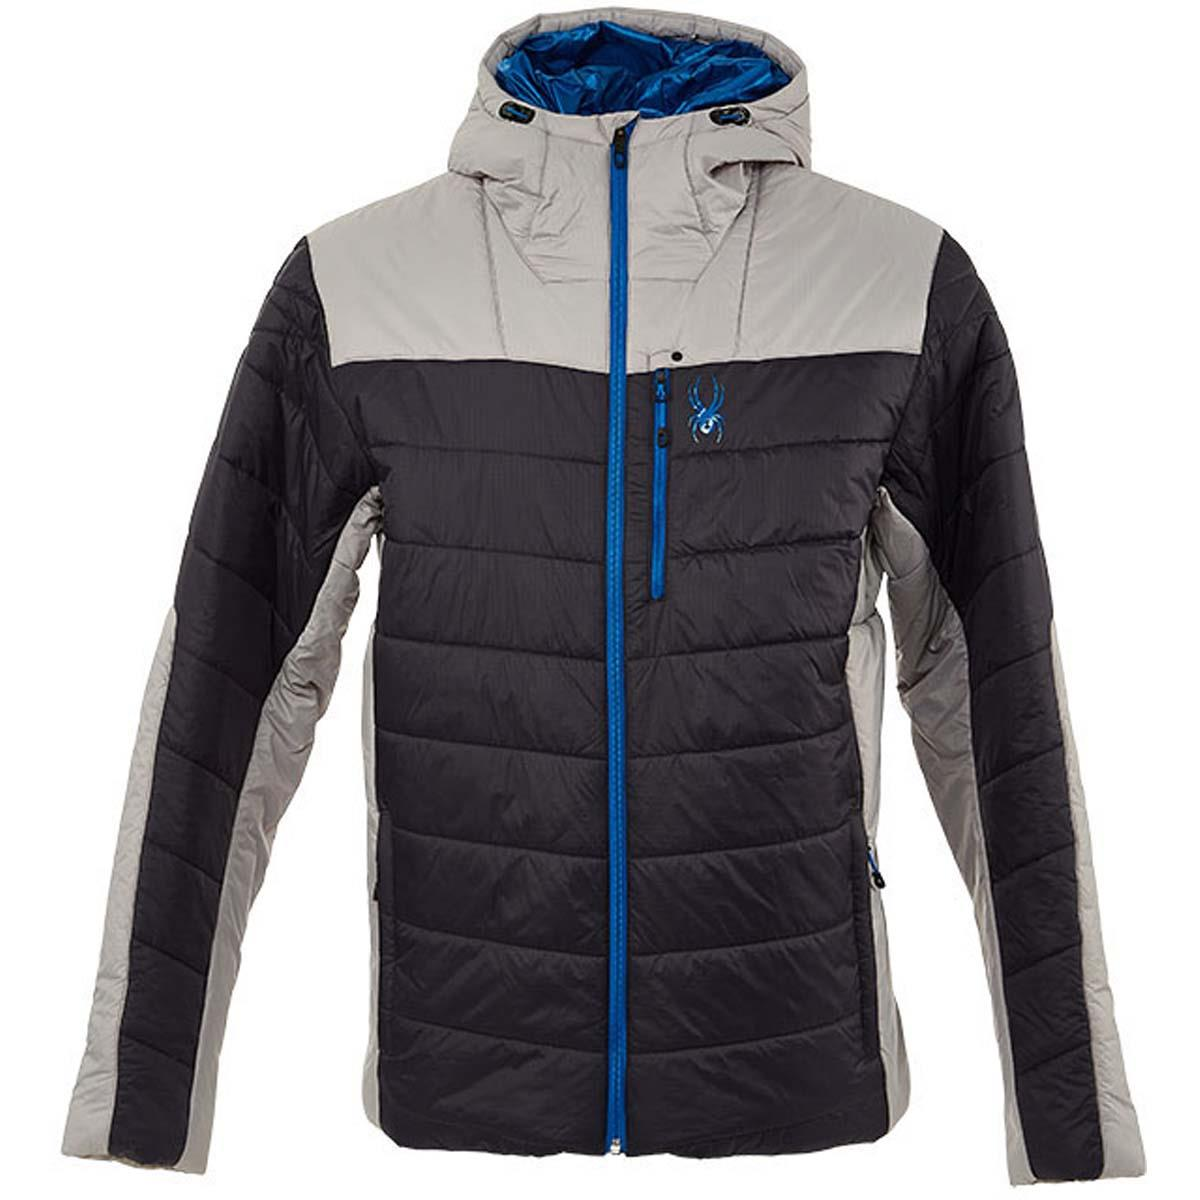 'Spyder' Men's Glissade Hooded Jacket - Ebony